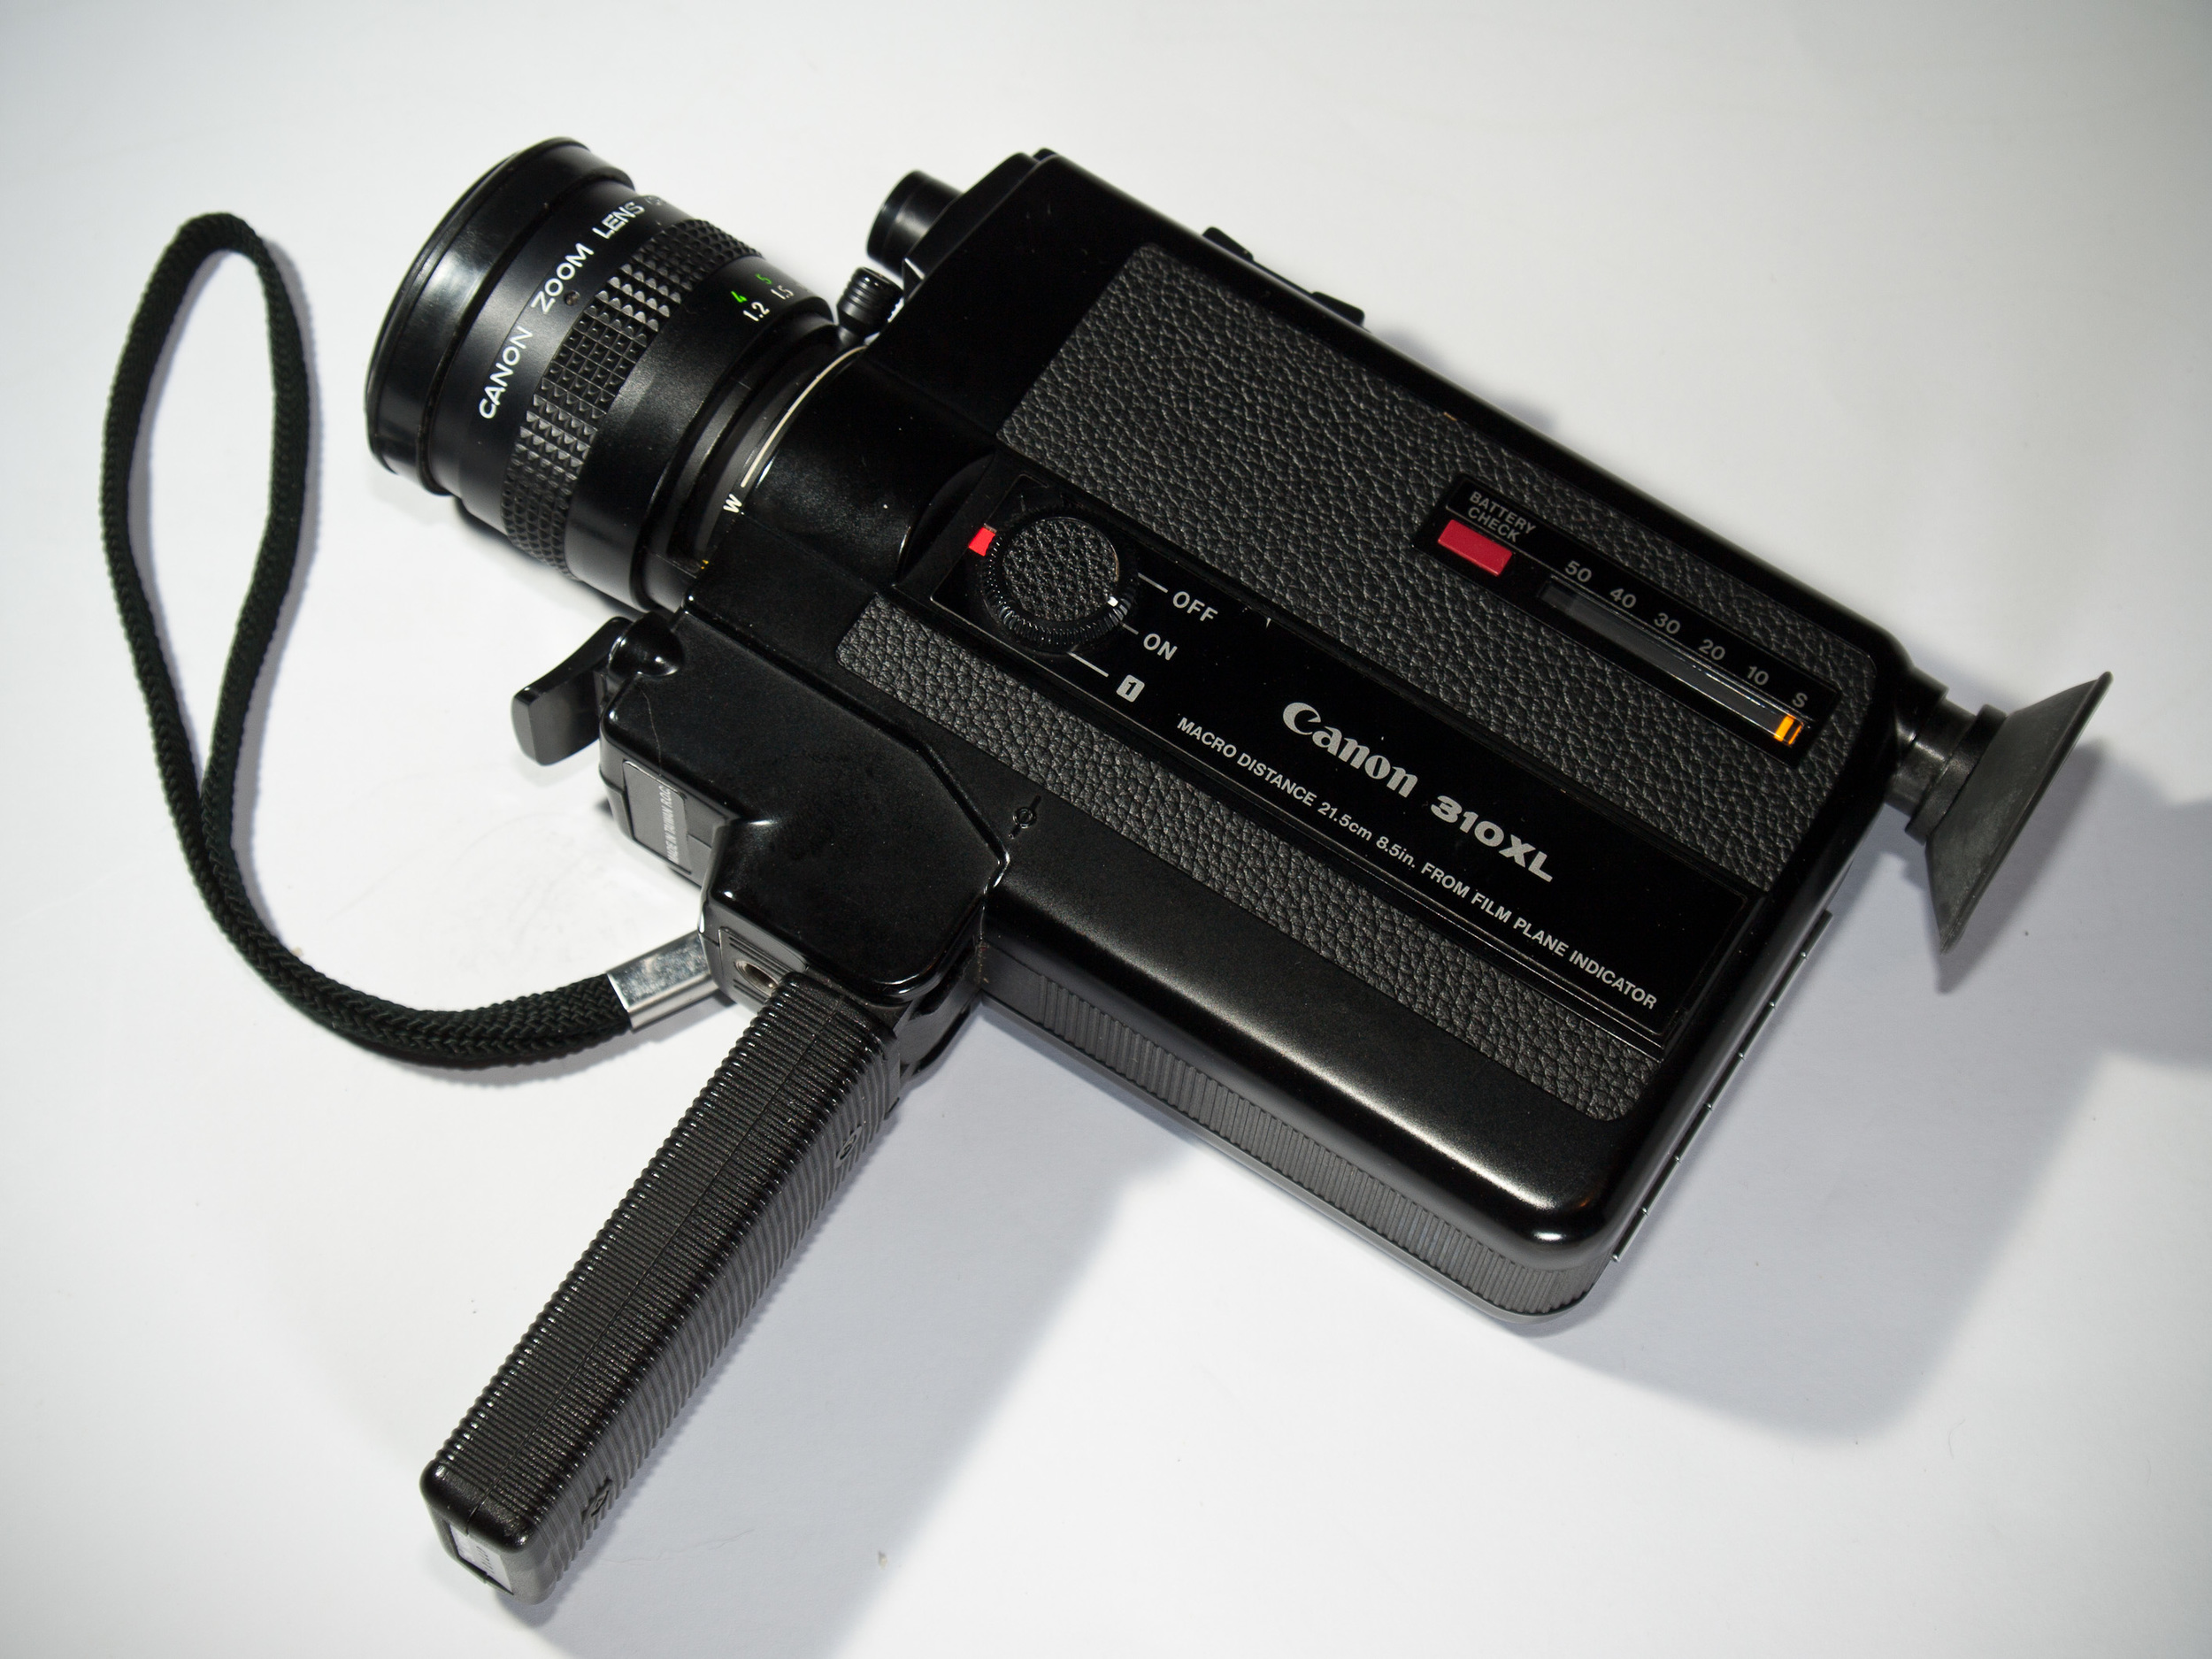 Super 8mm is what I learned on, as well as VHS. Ha, everyone who threw out their old vinyl and film equipment must kick themselves, because  Ebay!